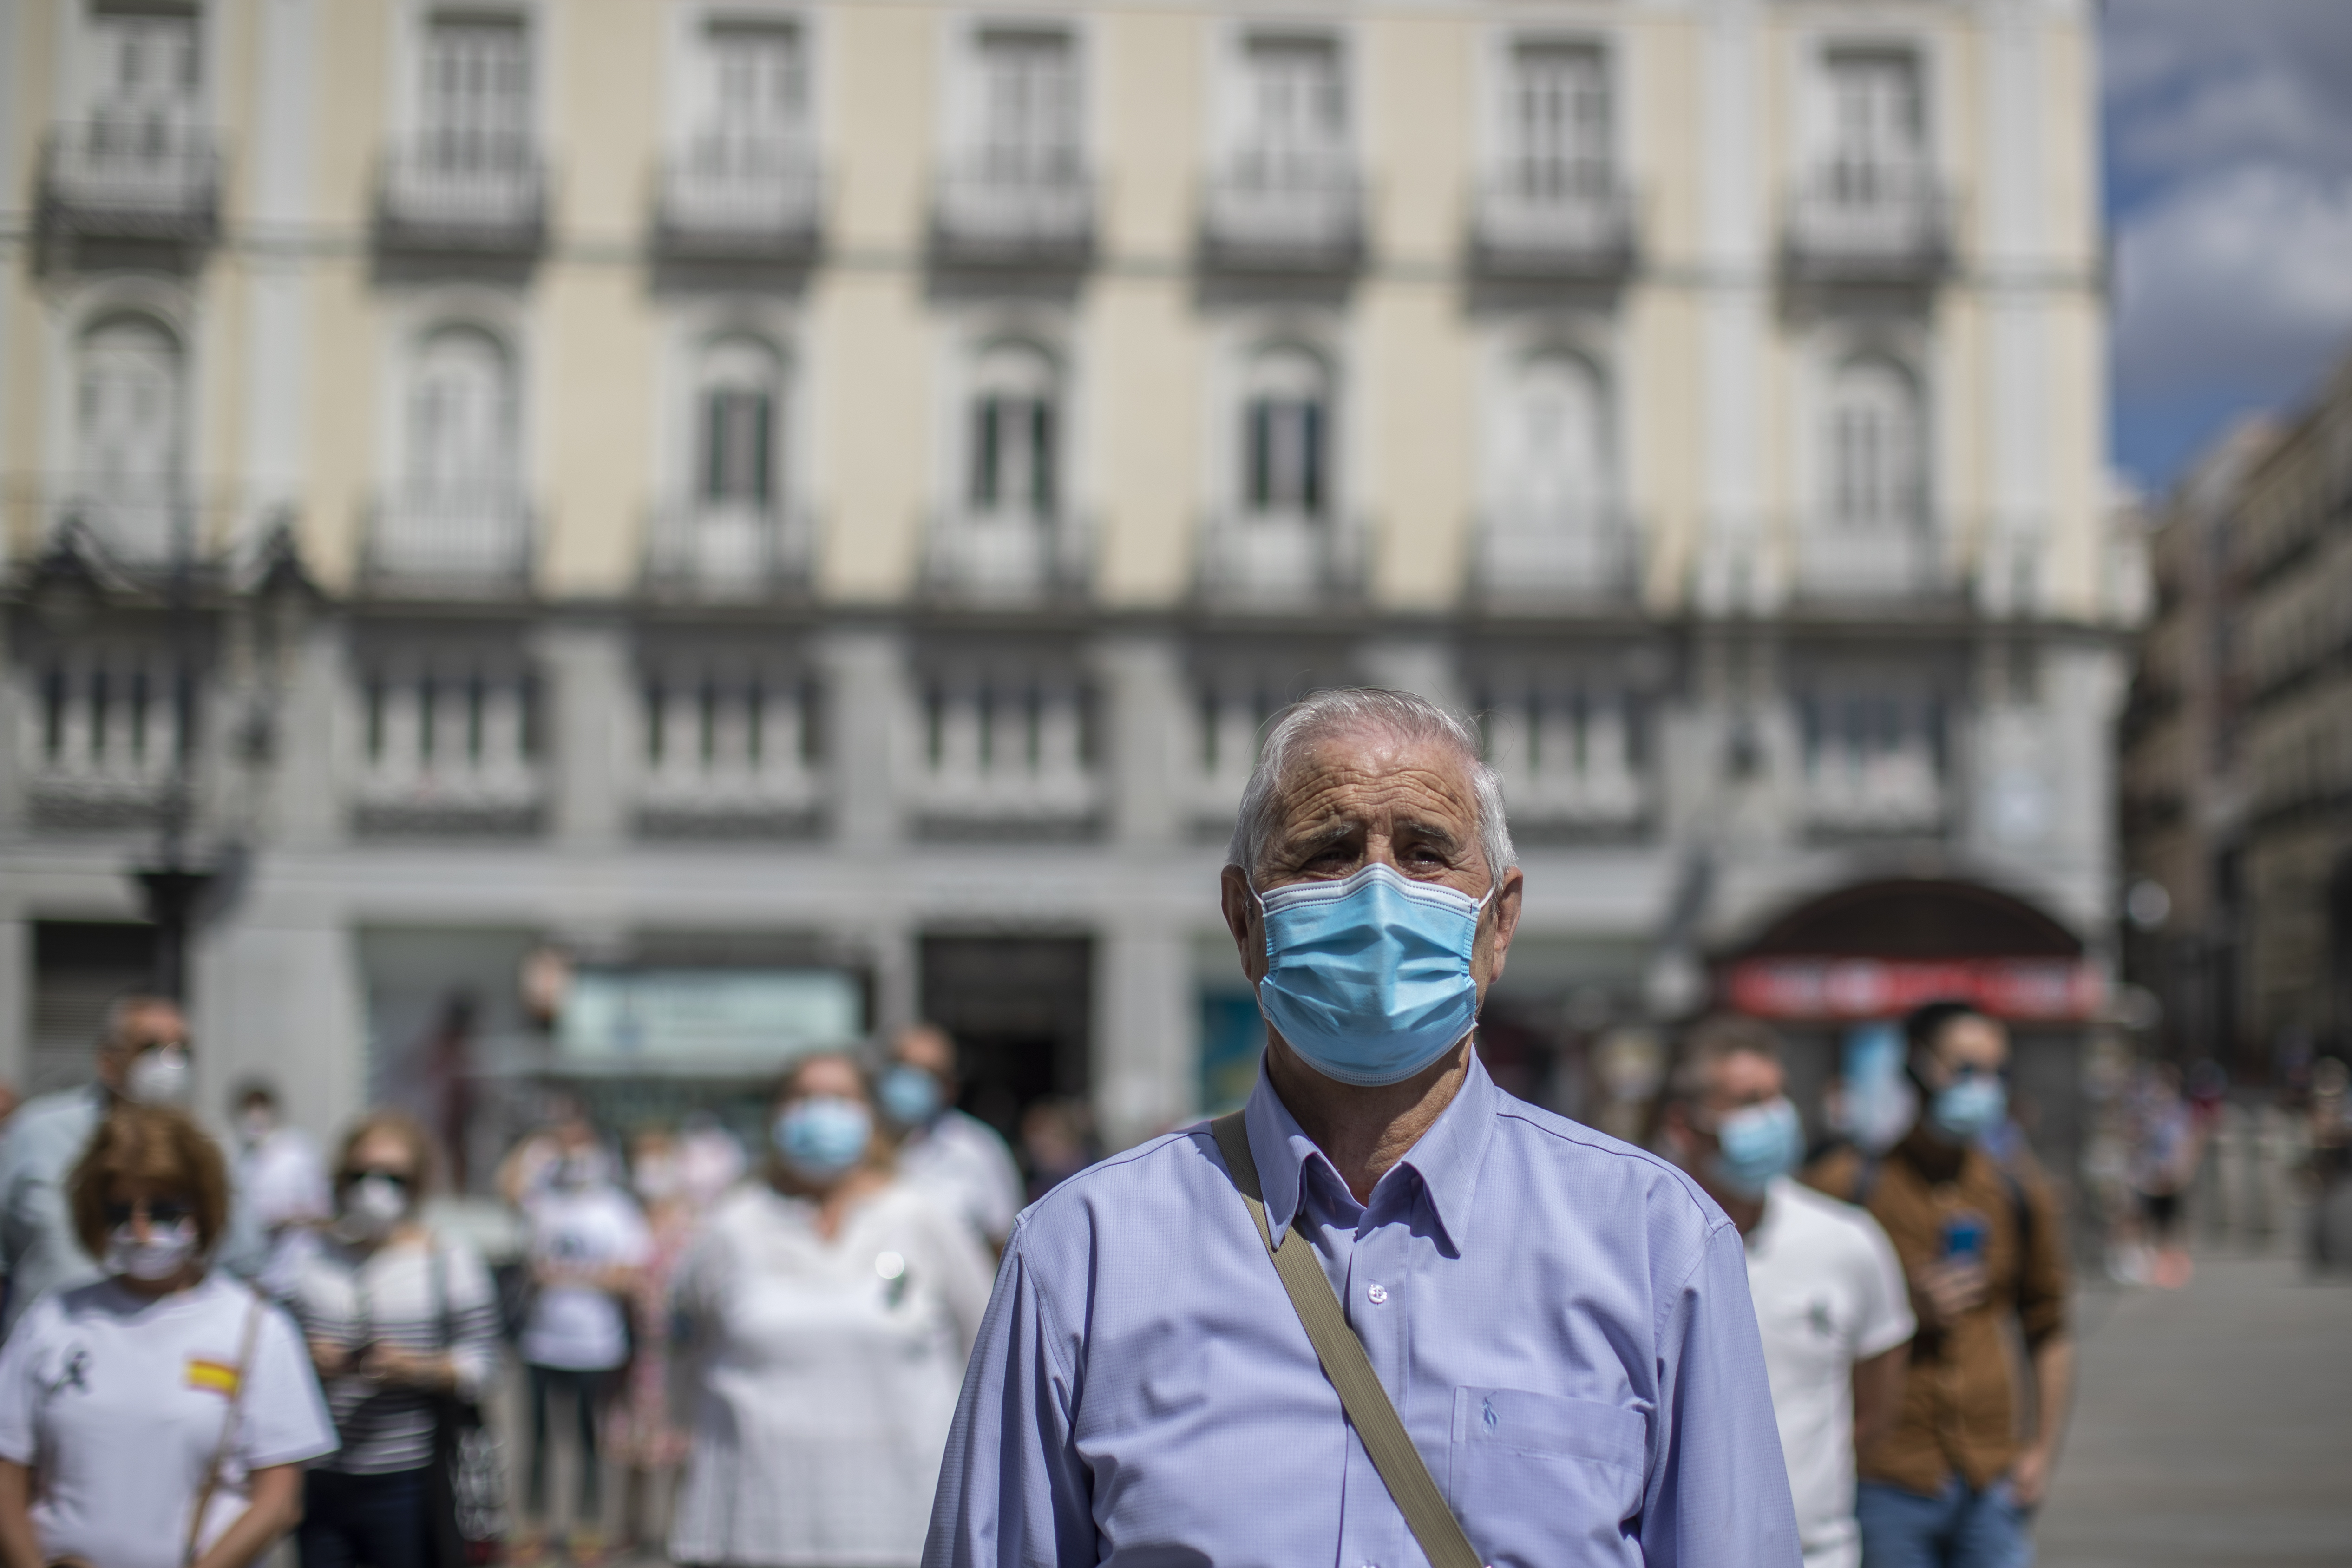 People hold a minute of silence for the victims of COVID-19 at Sol square in downtown Madrid, Spain, Wednesday, June 3, 2020. Spain's Health Ministry says it recorded no deaths from COVID-19 Wednesday for a second day in a row. (AP Photo/Manu Fernandez)